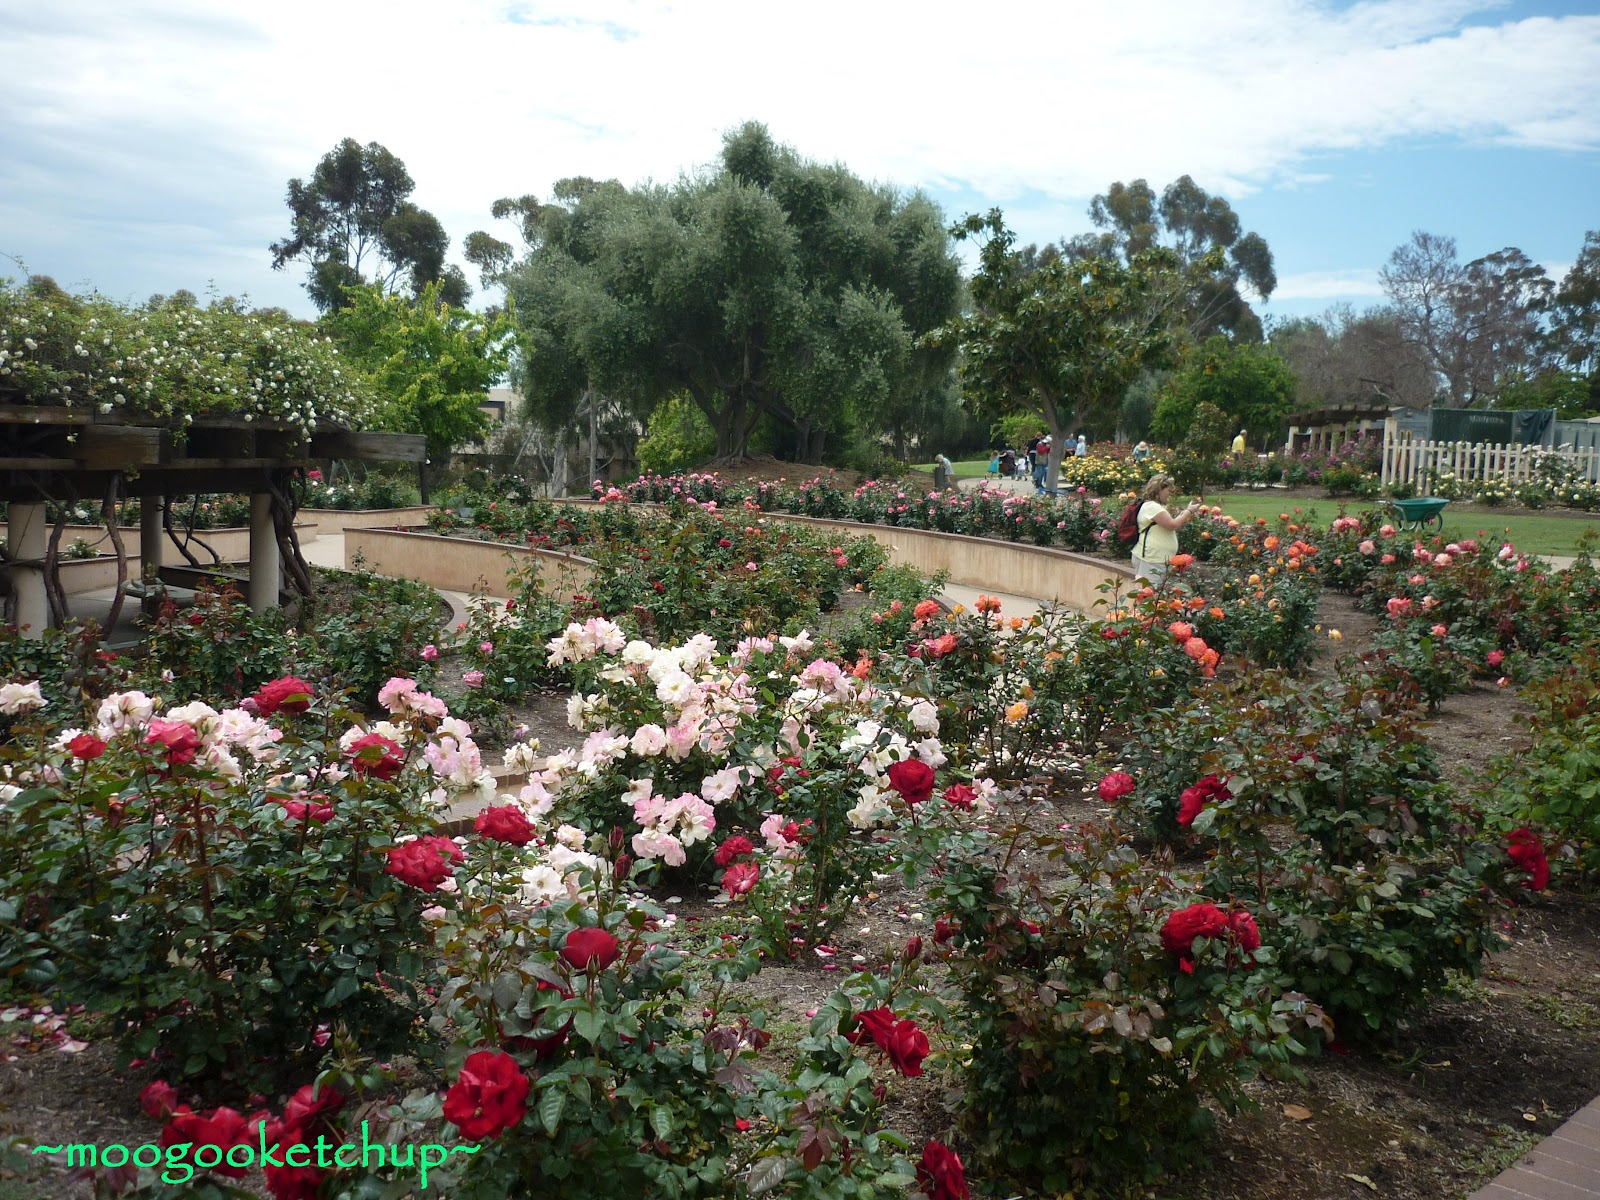 Roses In Garden: My Footsteps...: Roses At Rose Garden, Balboa Park, San